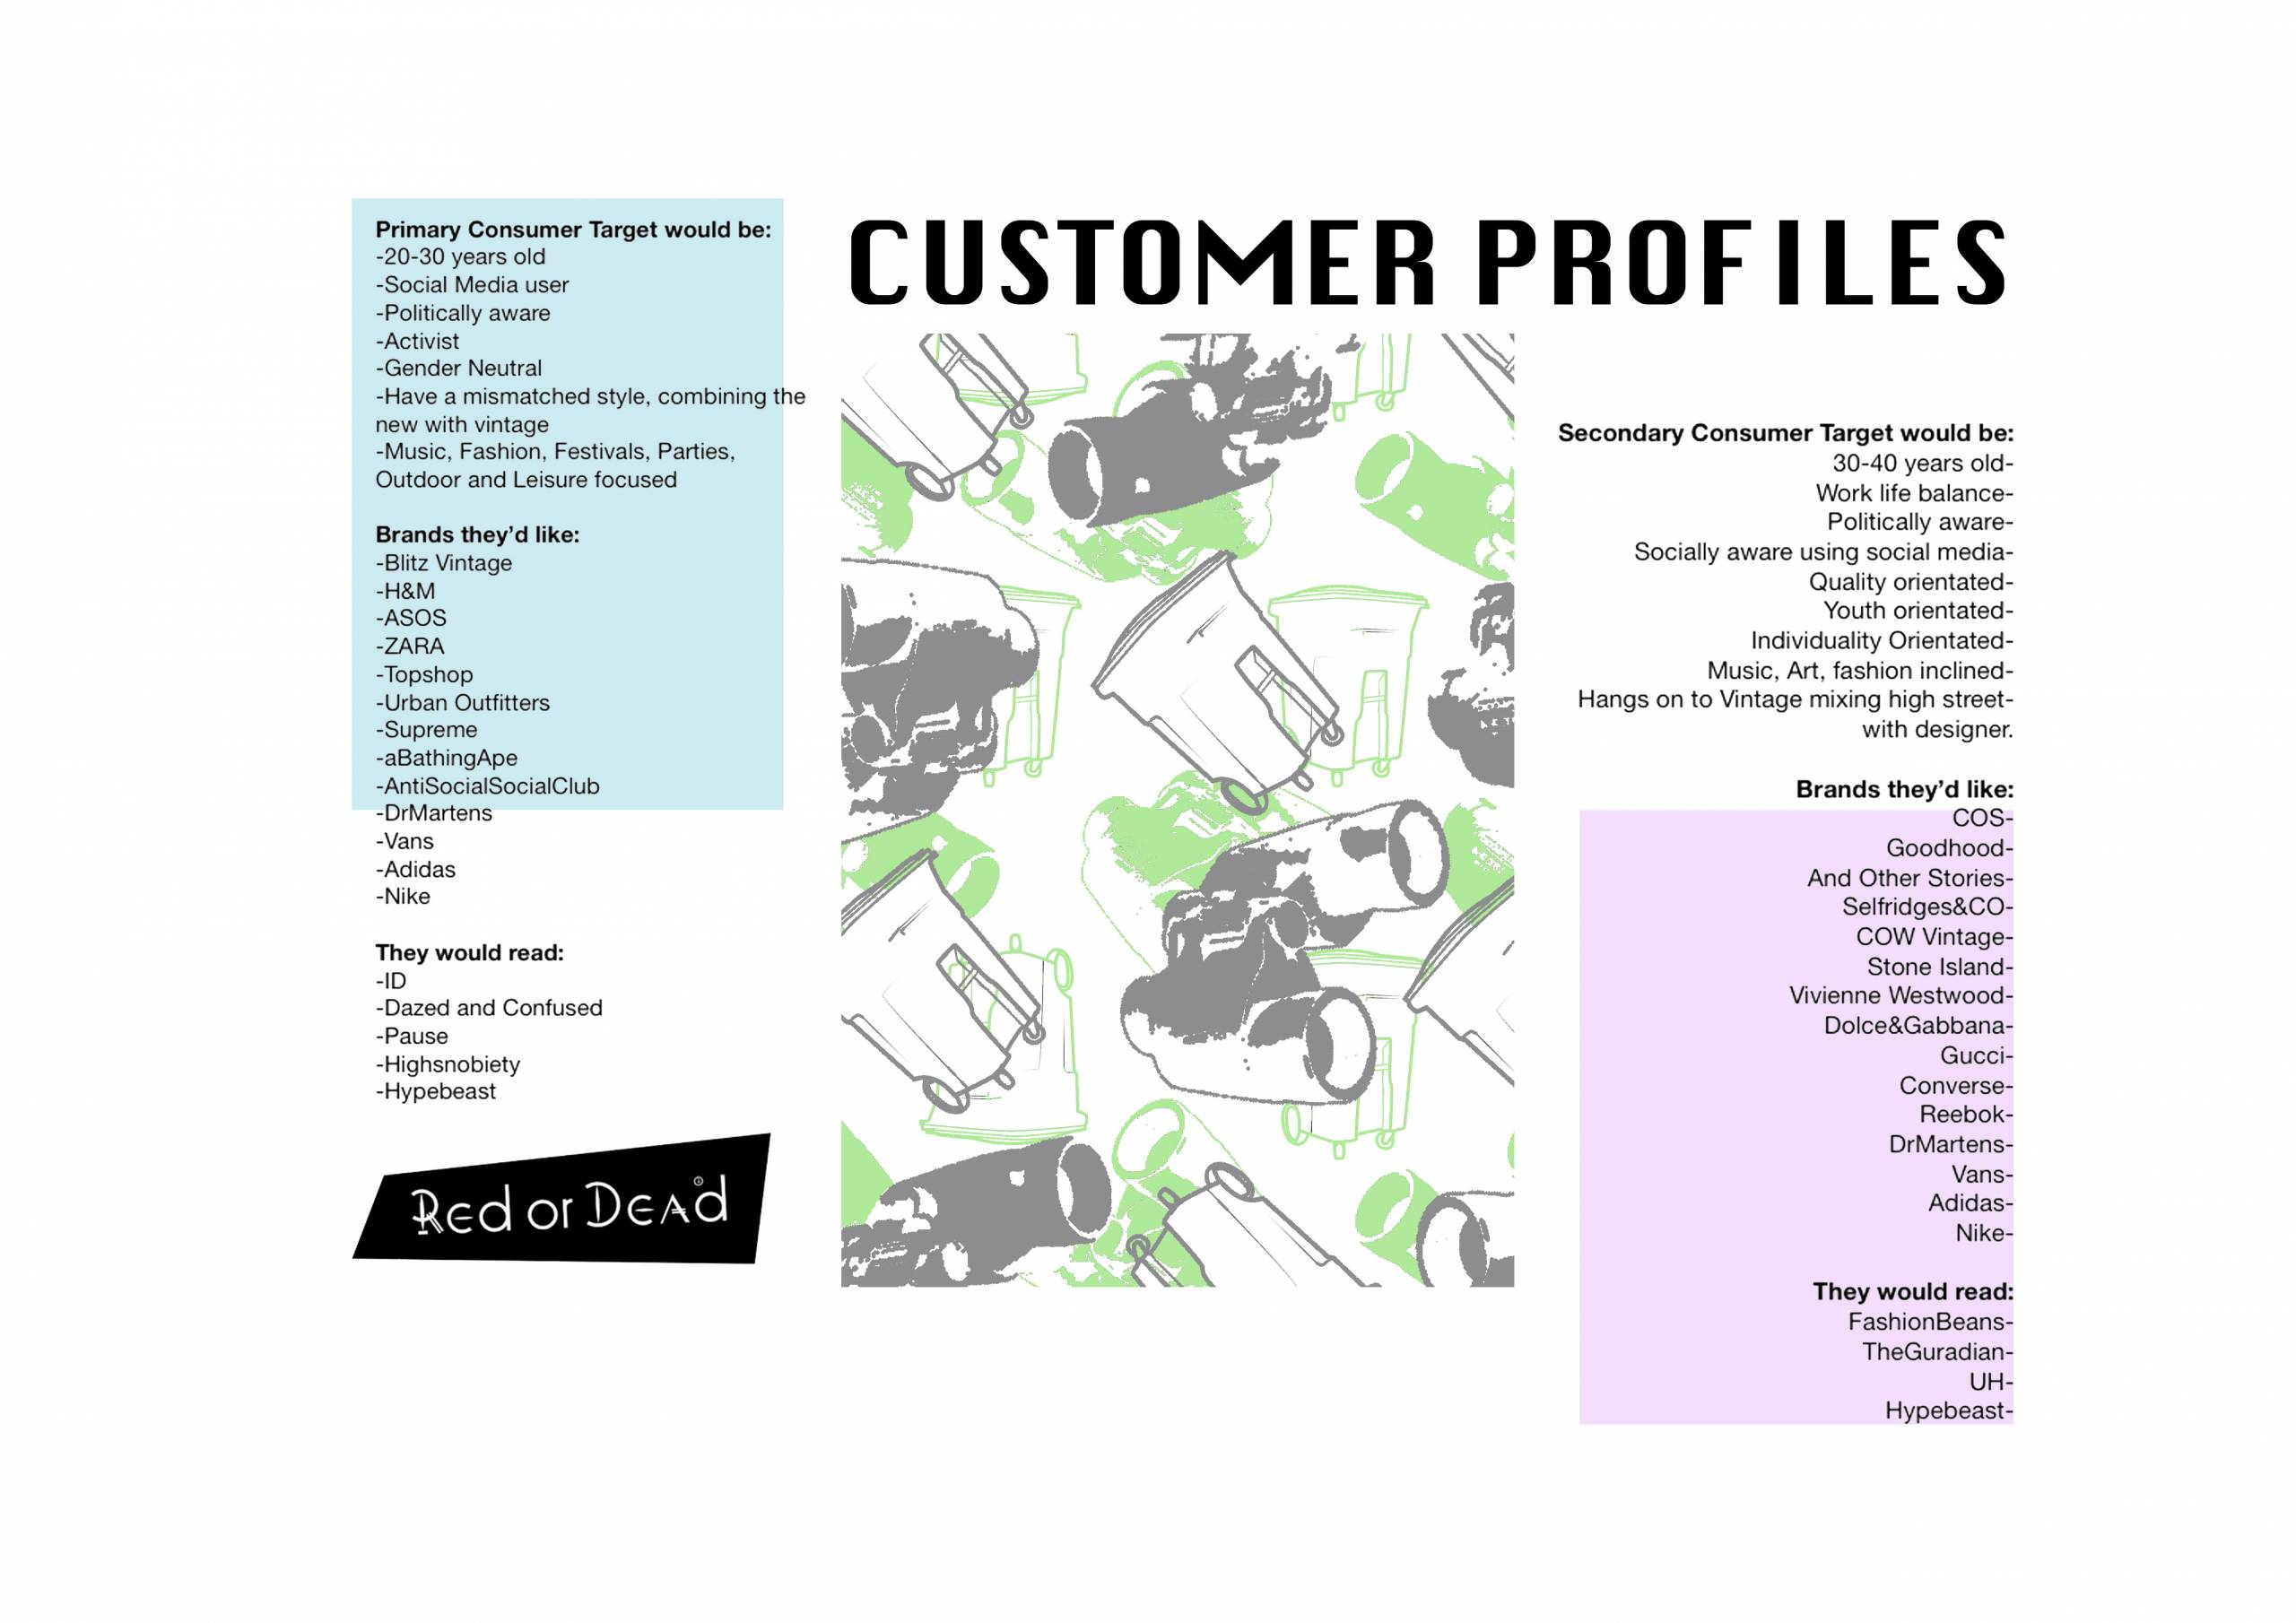 gucci customer profile